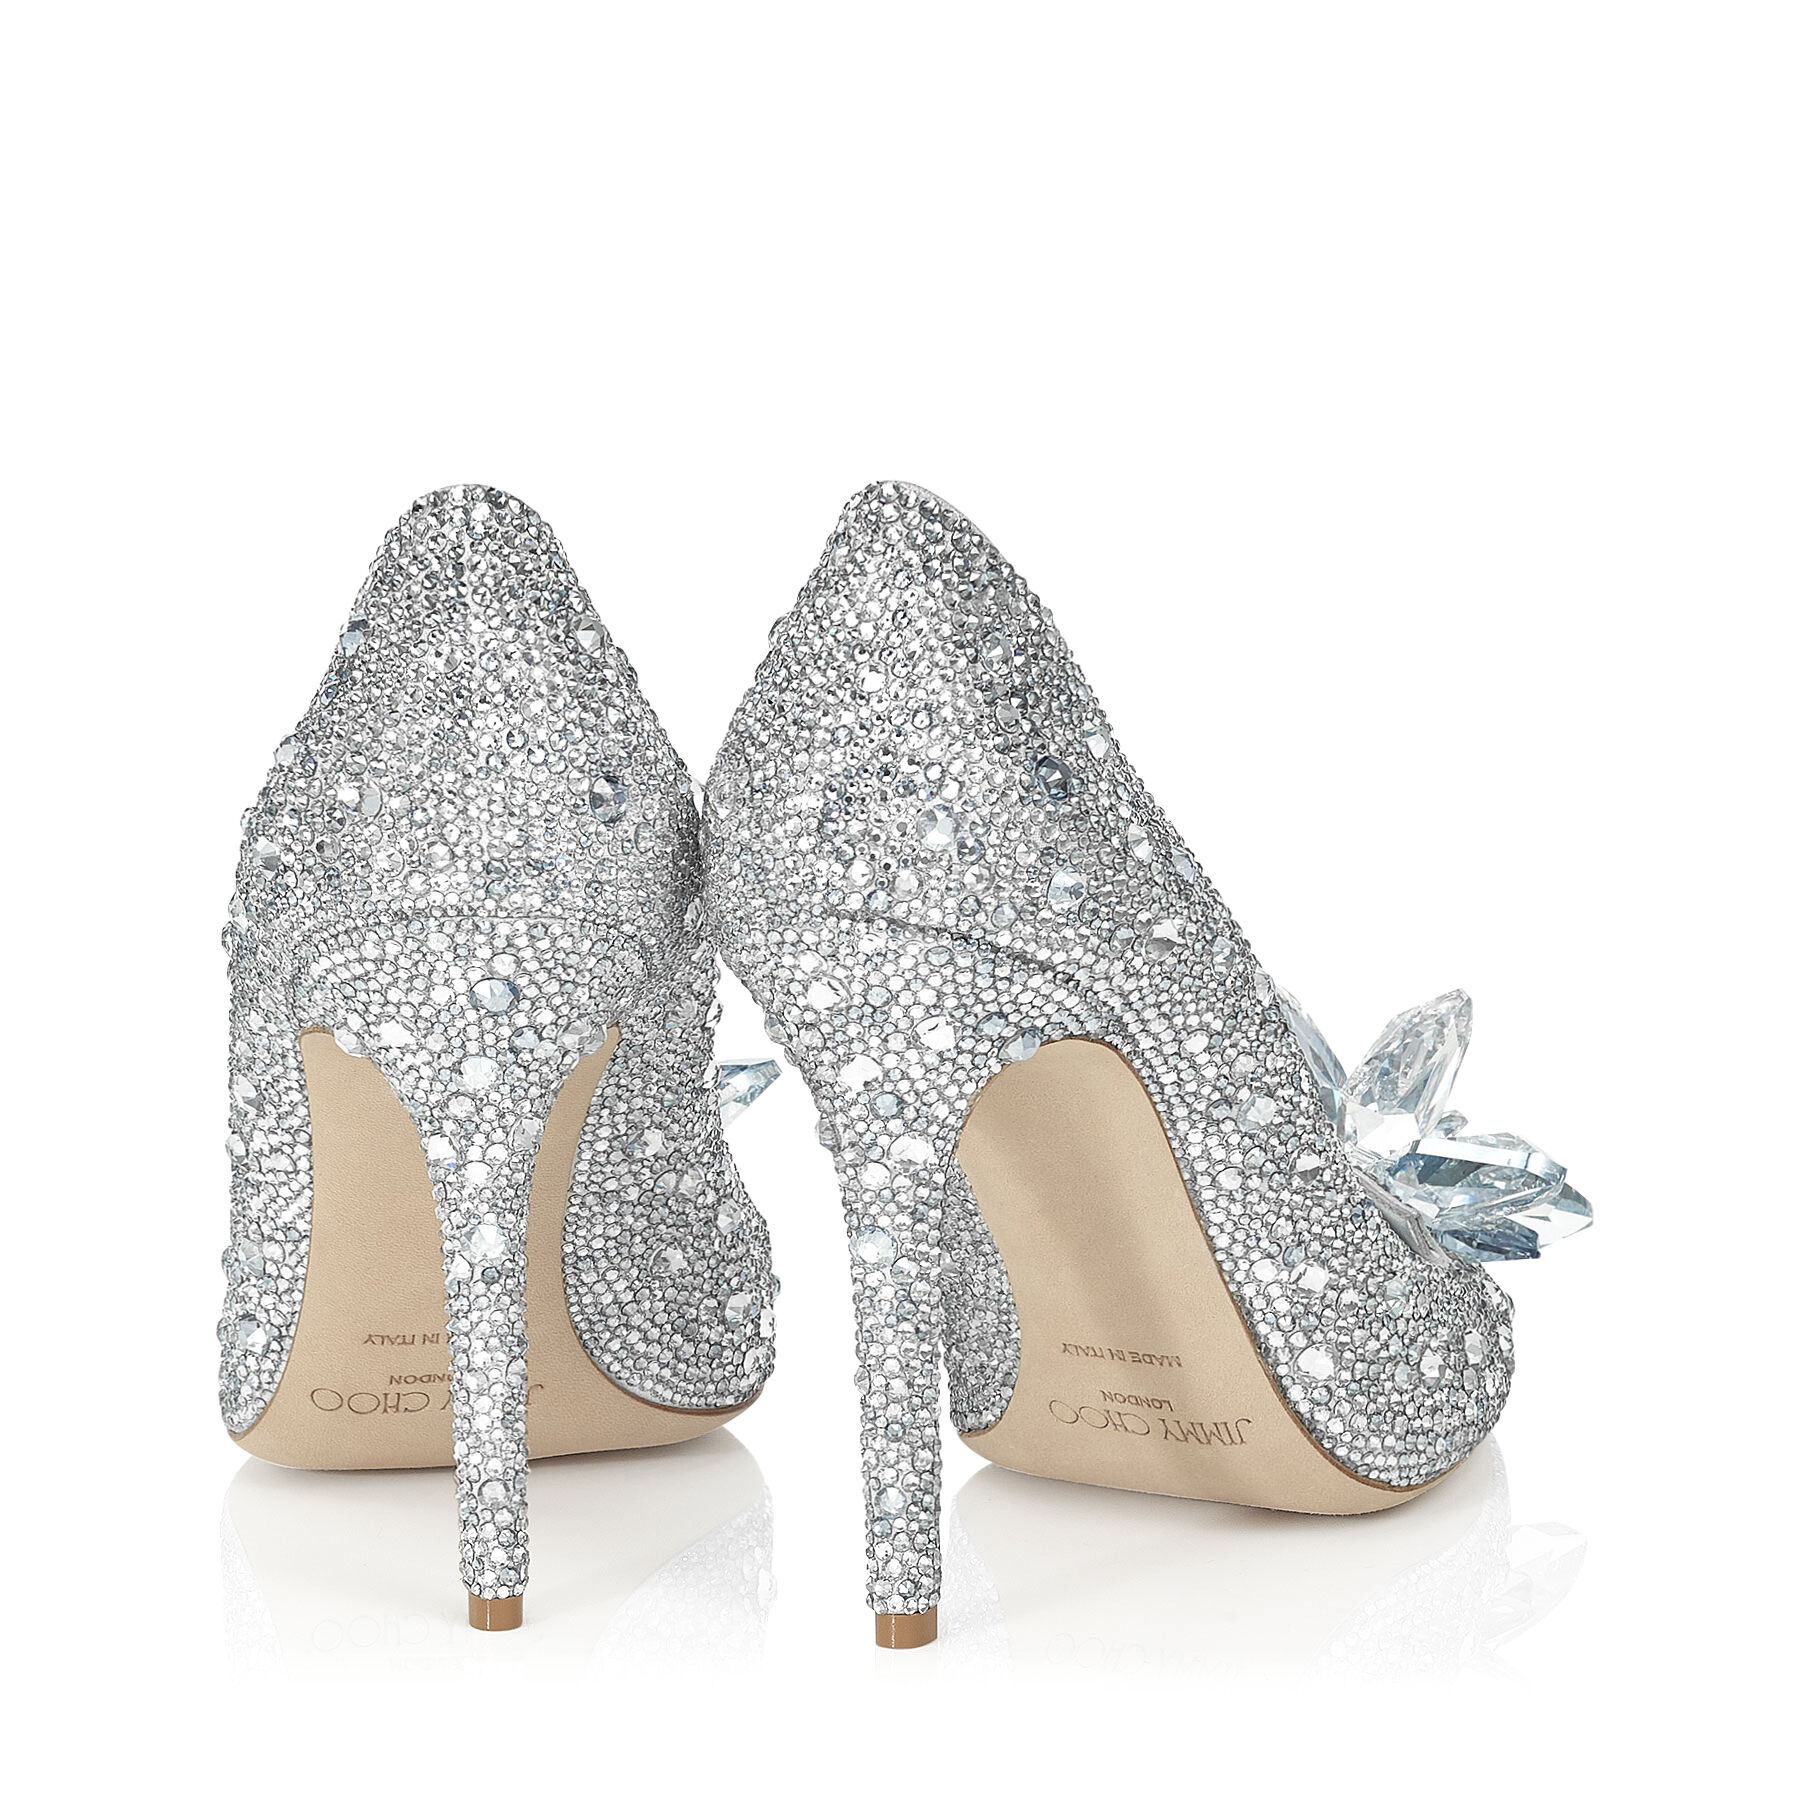 Jimmy Choo Shoes Price In Indian Rupees